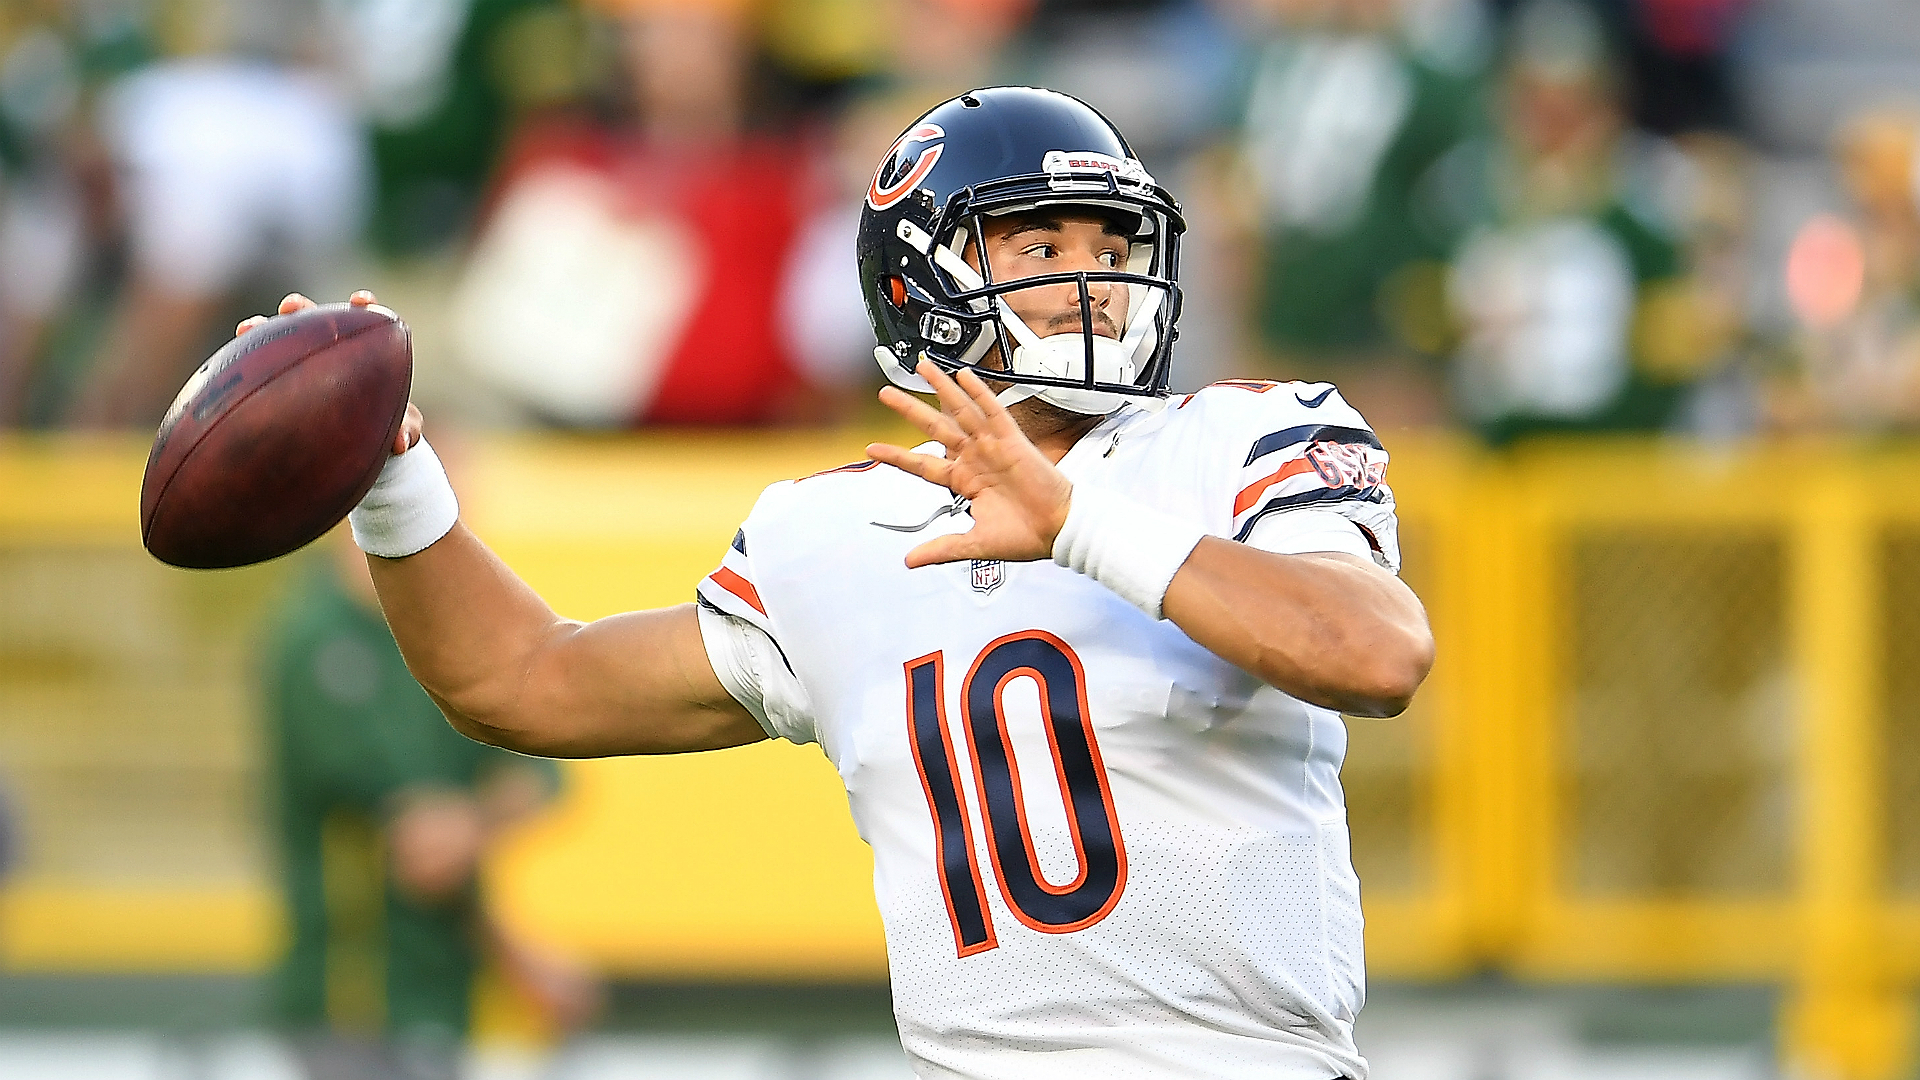 Chicago Bears: 3 burning questions following loss to Dolphins